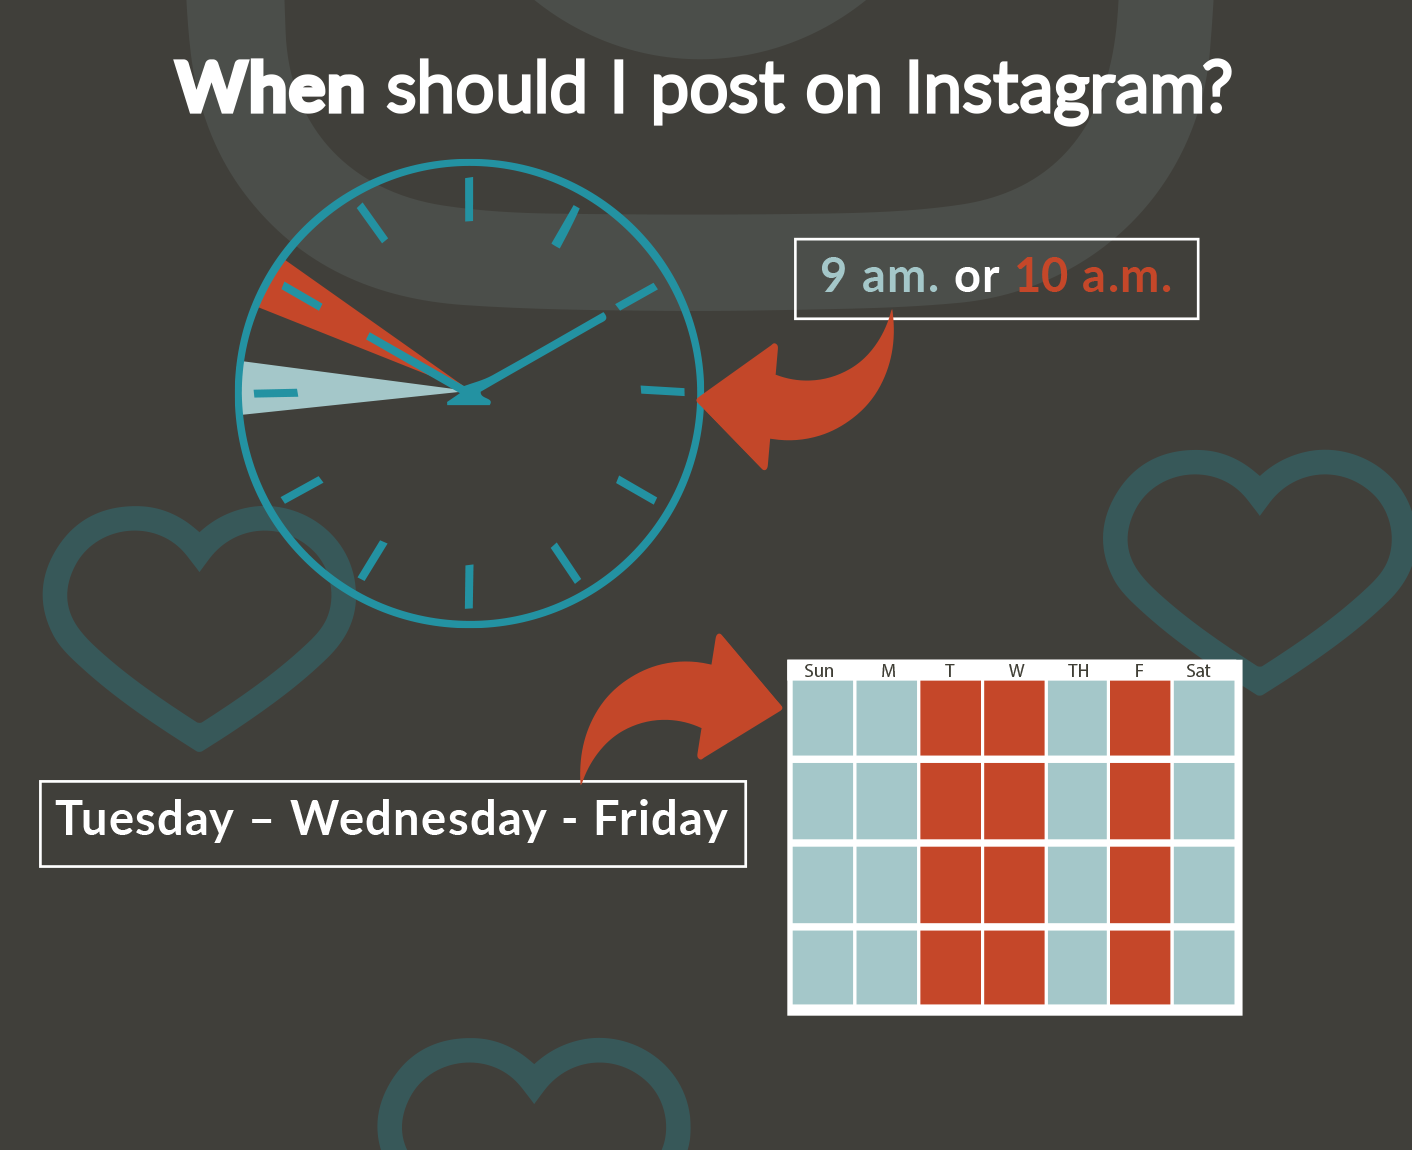 Jones-complete-social-media-guide-instagram-whentopost